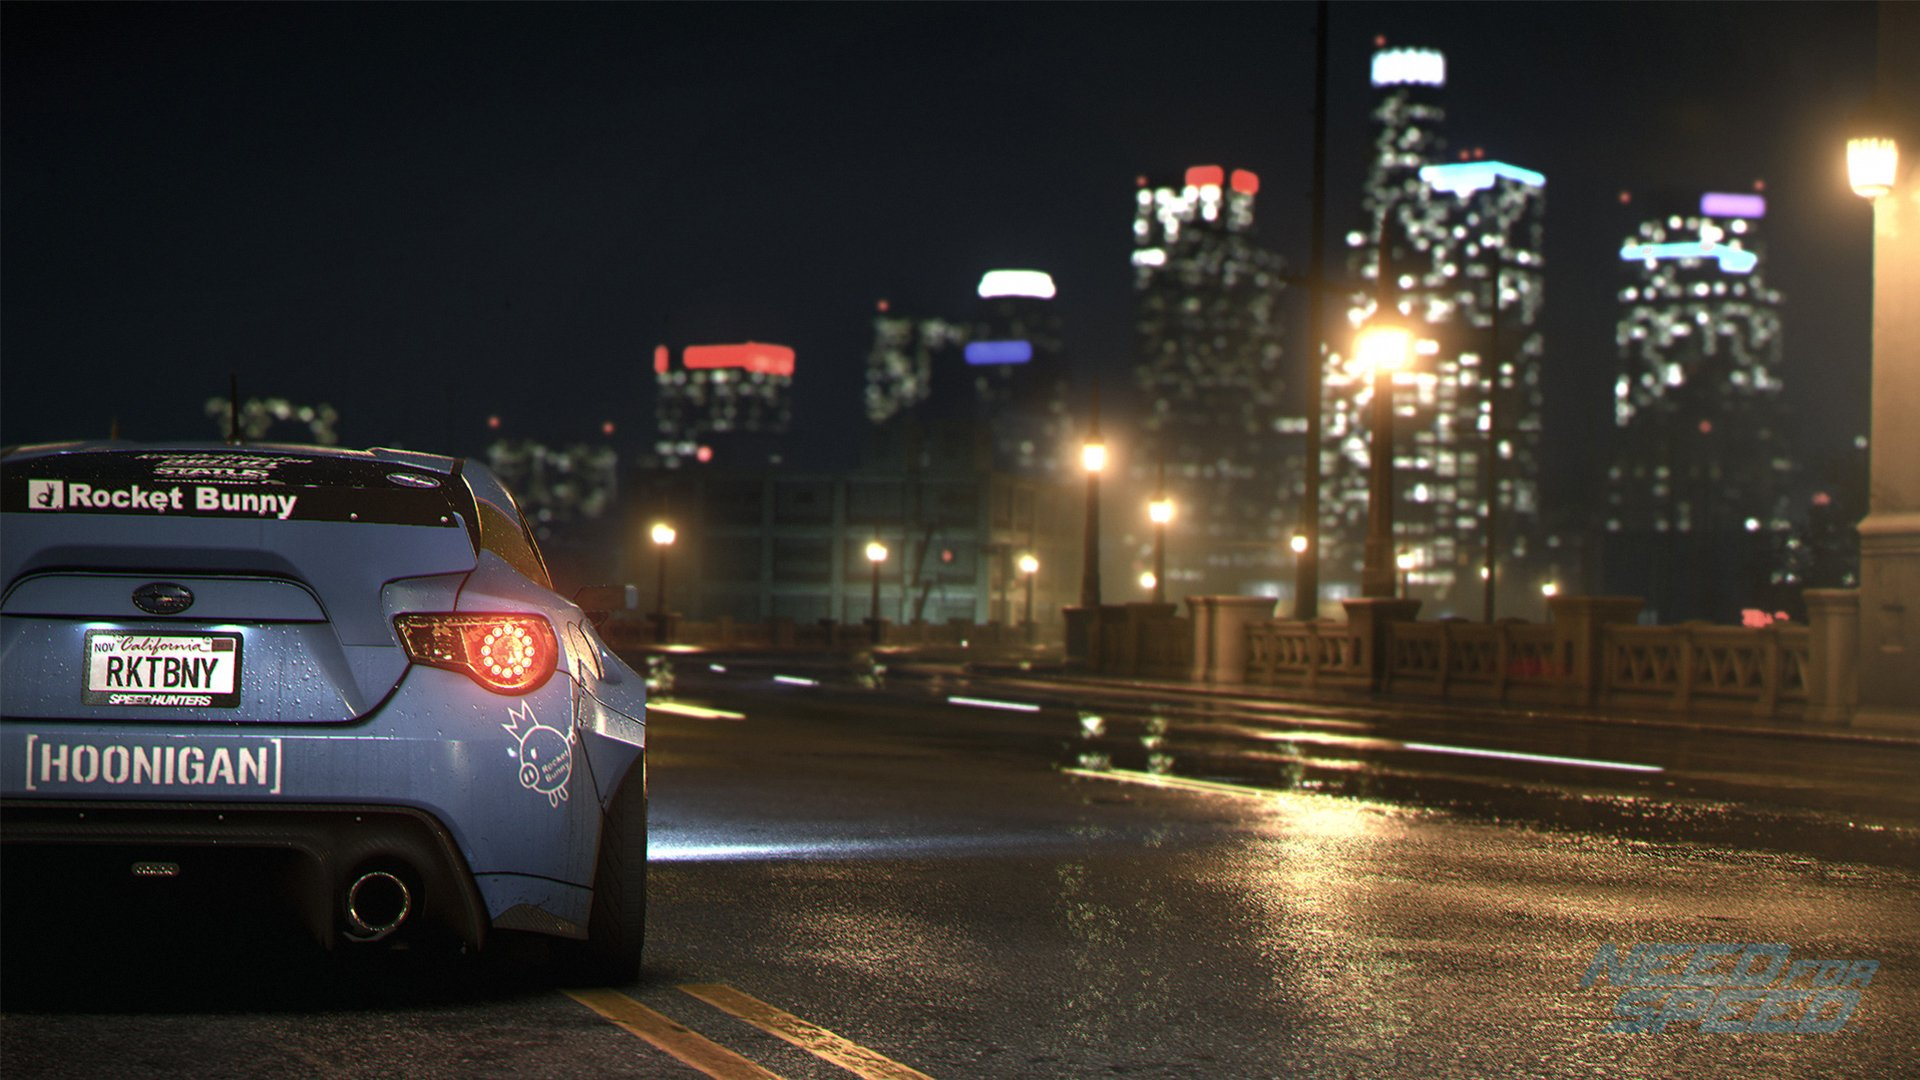 802 Need for Speed HD Wallpapers Background Images 1920x1080